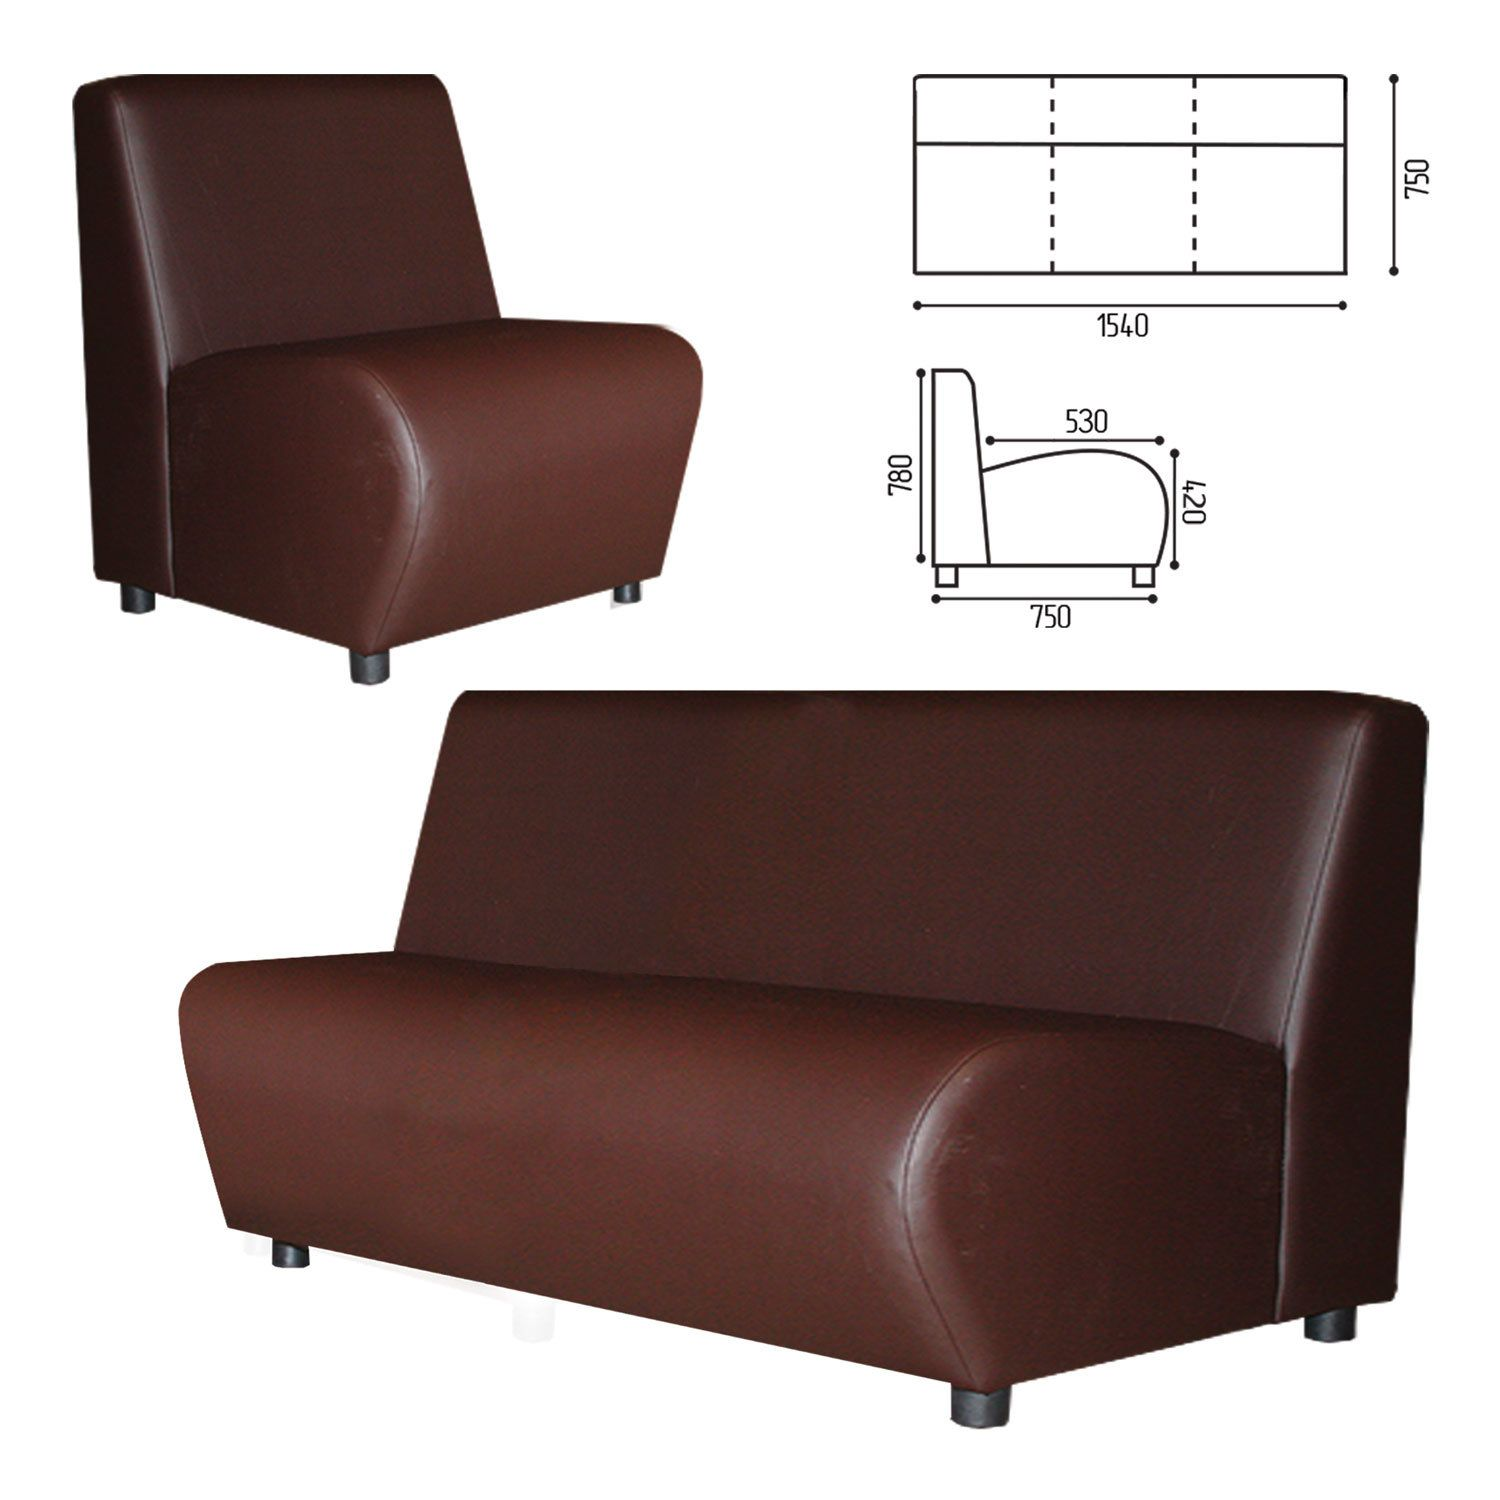 """GARTLEX / Sofa soft three-seater """"Cloud"""", """"V-600"""", 1540x750x780 mm, without armrests, eco-leather, brown"""